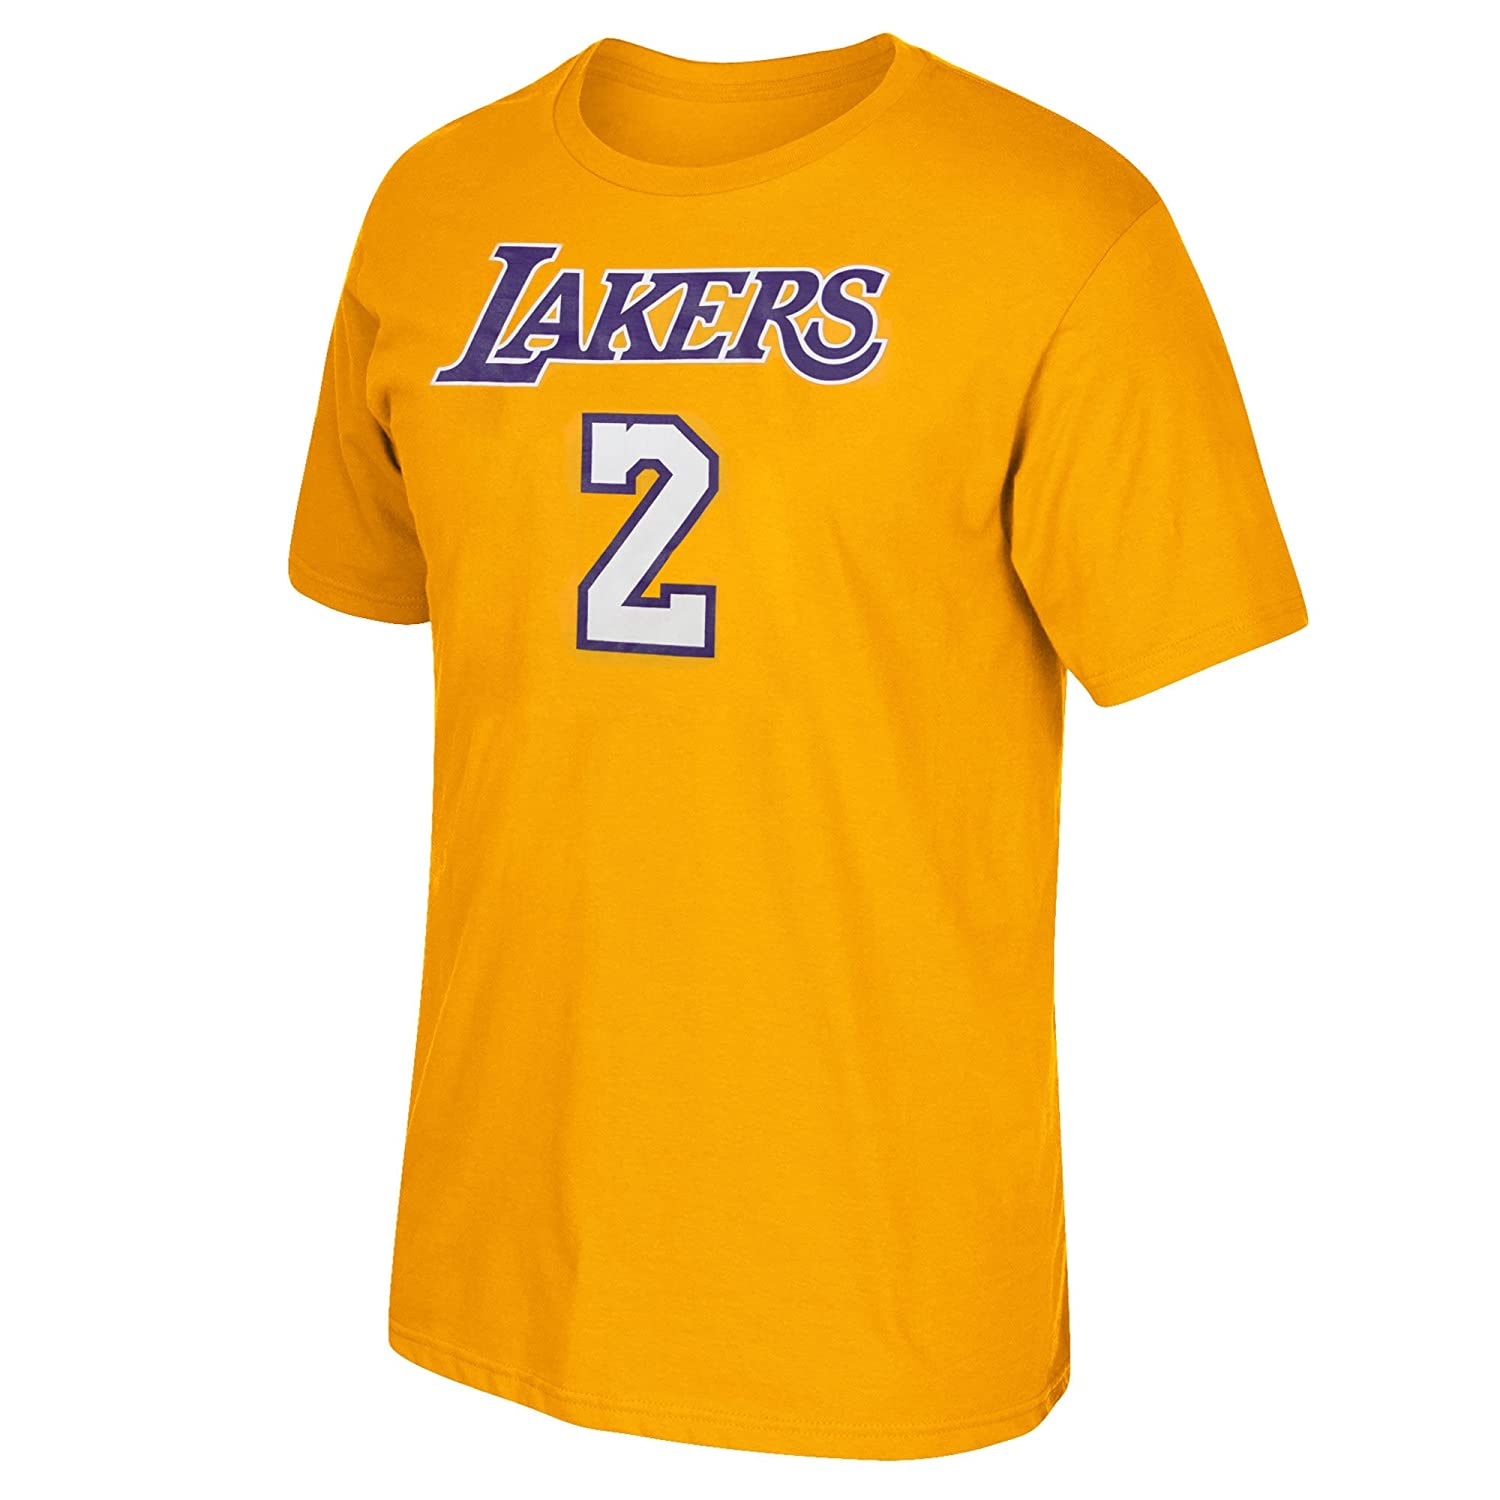 Amazon.com : Los Angeles Lakers Lonzo Ball adidas Player T-Shirt : Sports & Outdoors